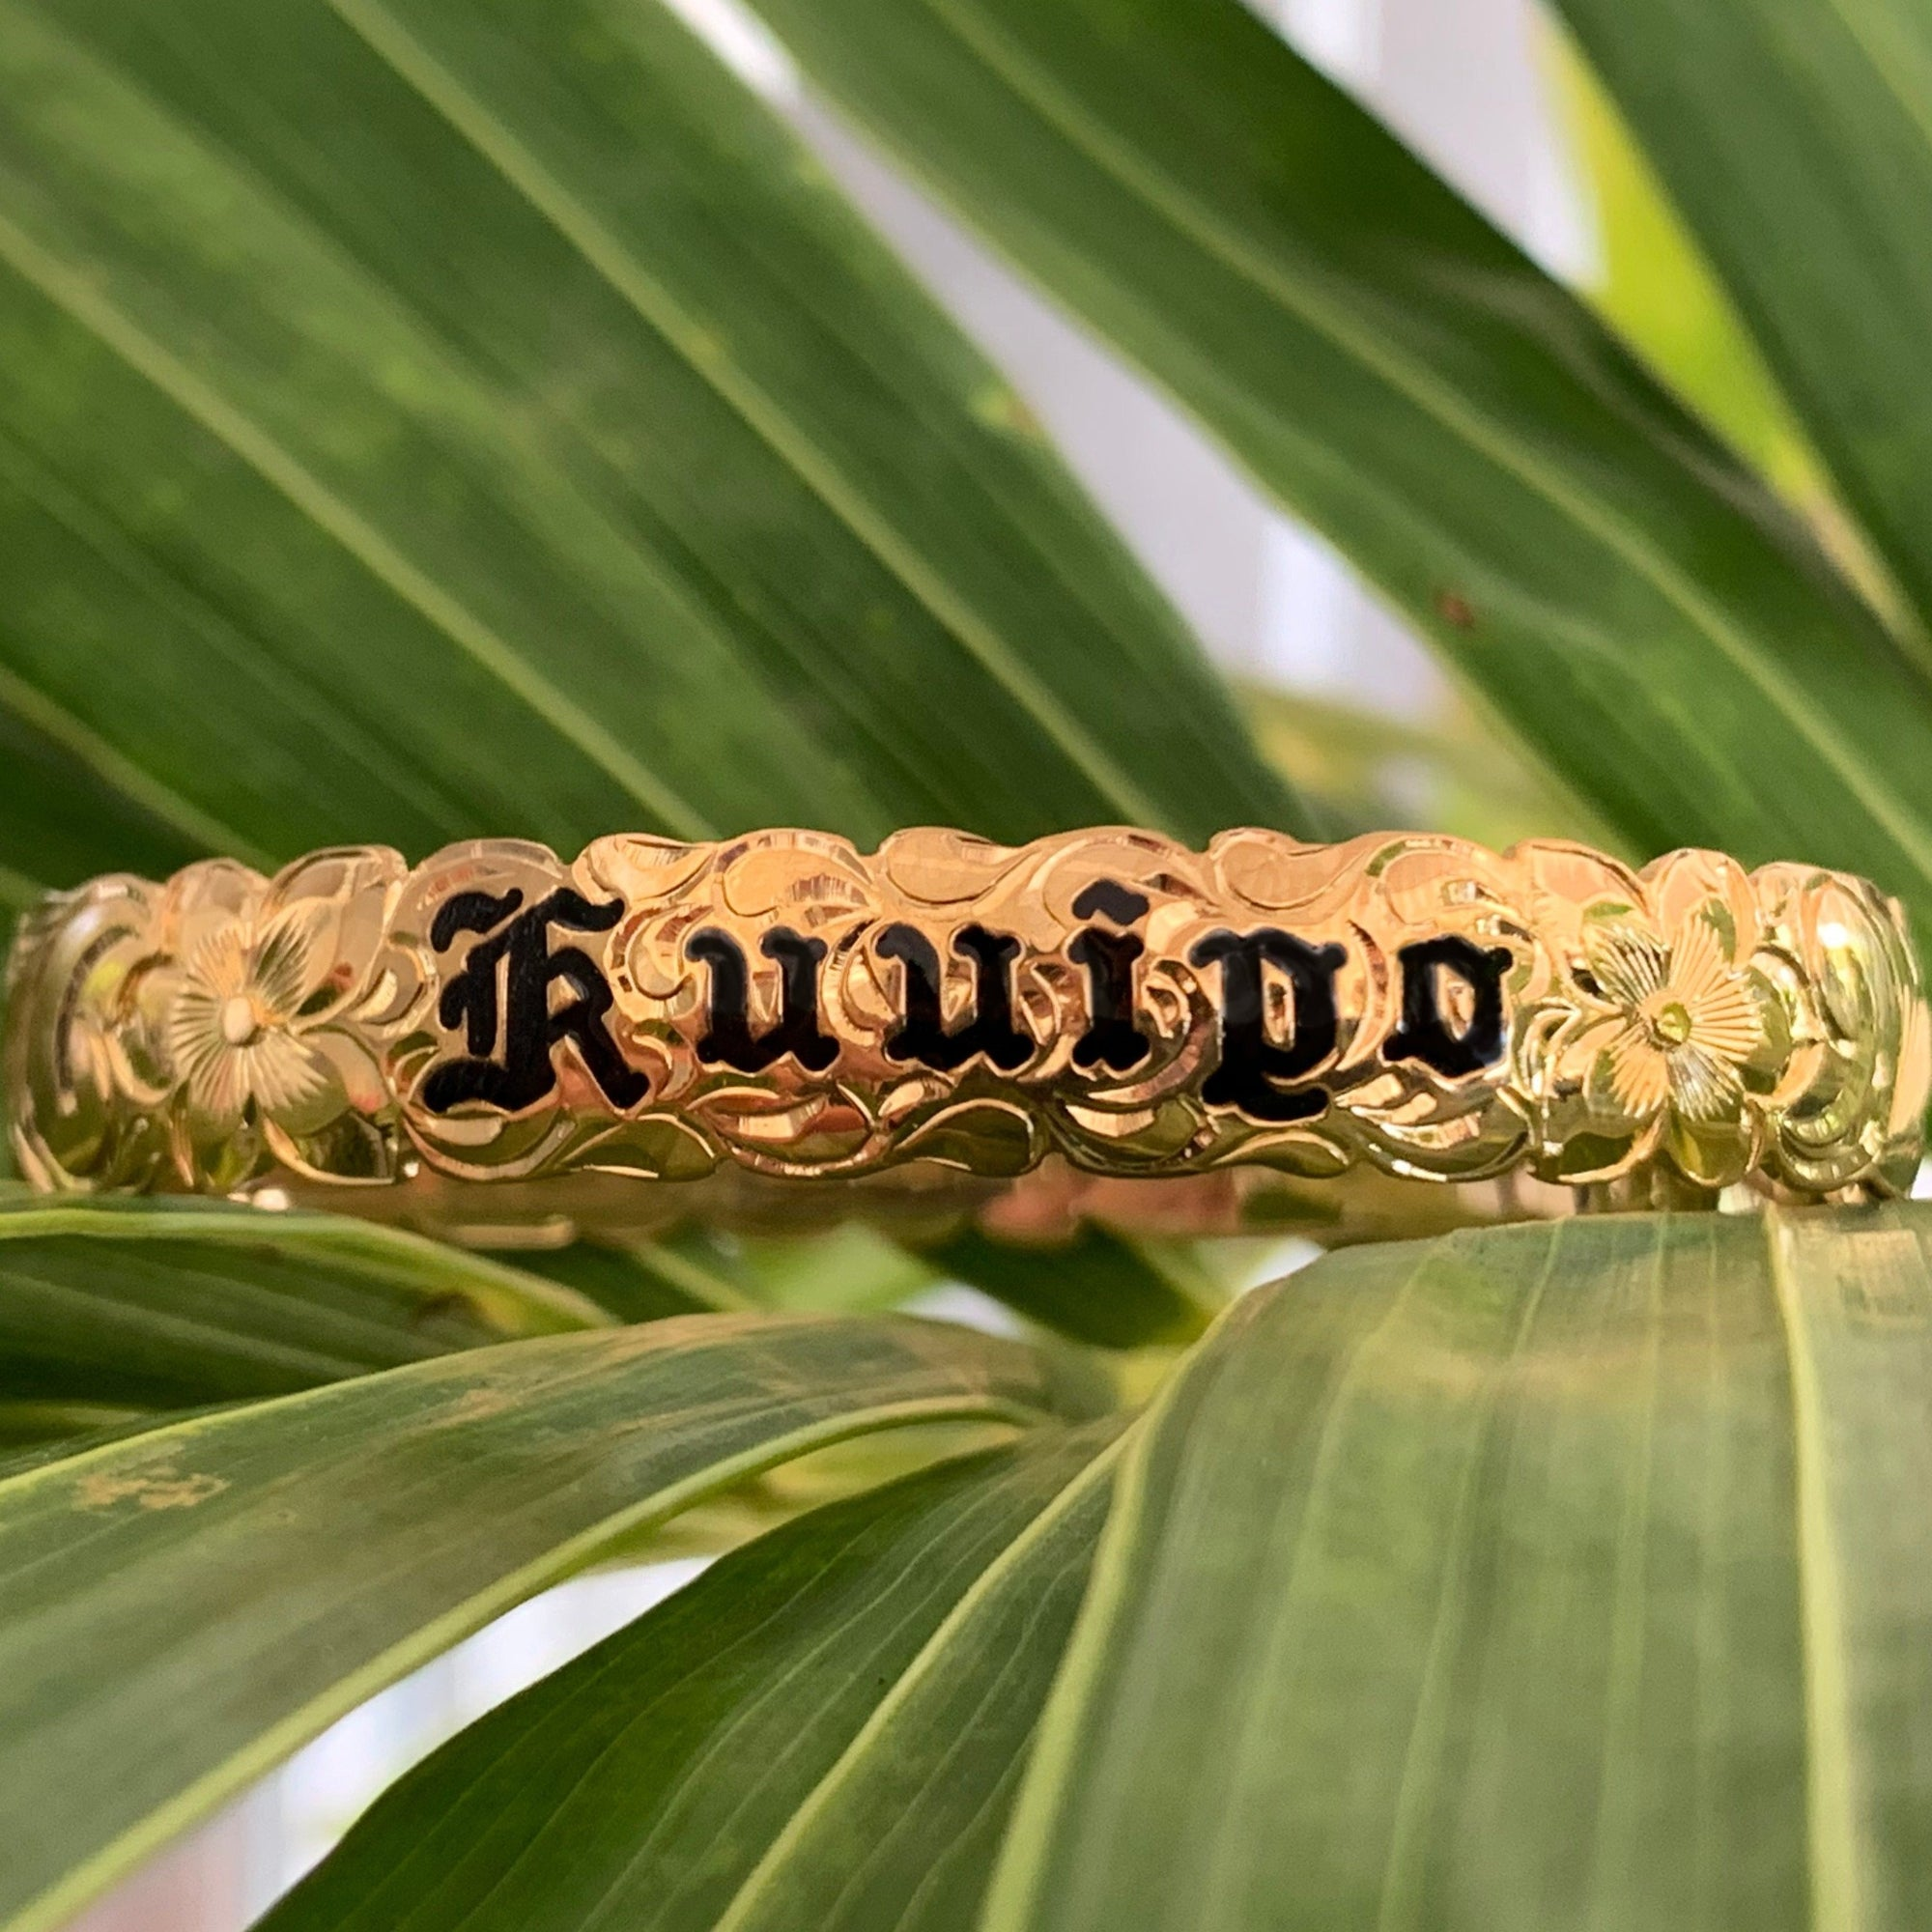 Custom 10mm Bracelet with black enamel lettering and scallop edge design.